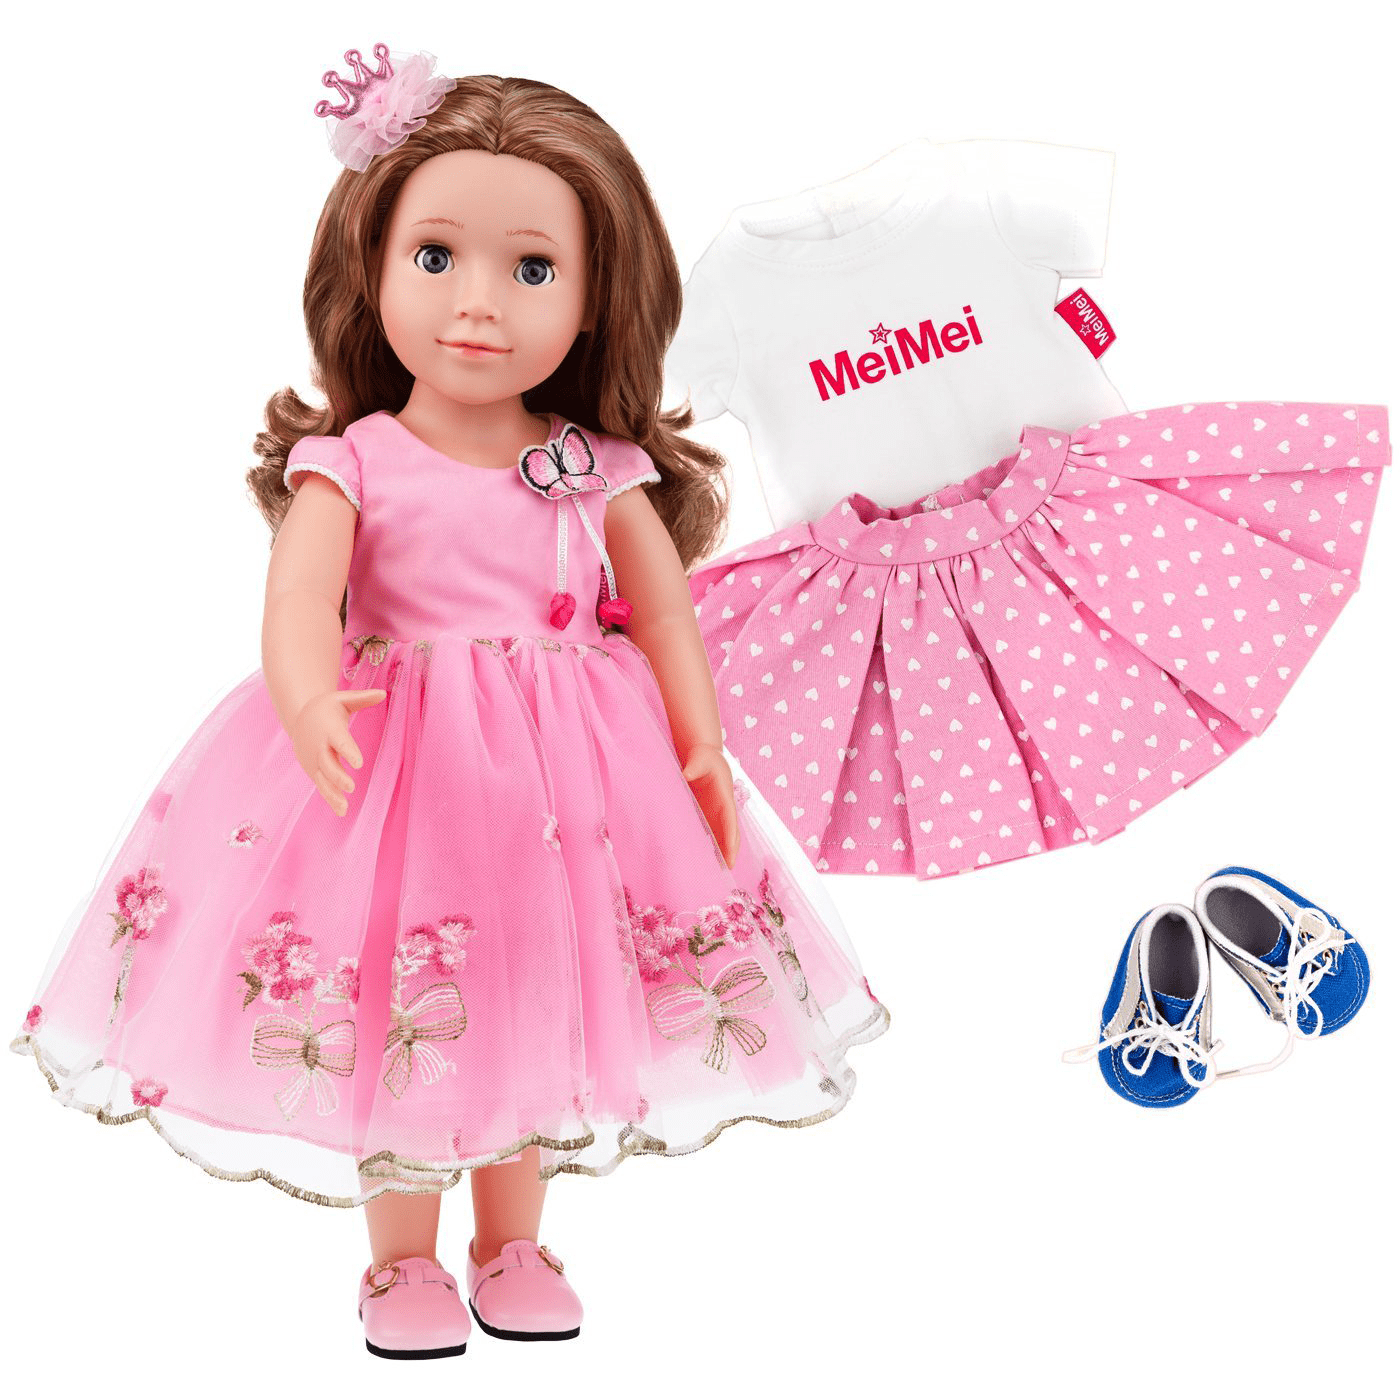 Fashion Vinyl Doll Princess Dolls Pink Flower Butterfly Dress Golden Blonde Hair